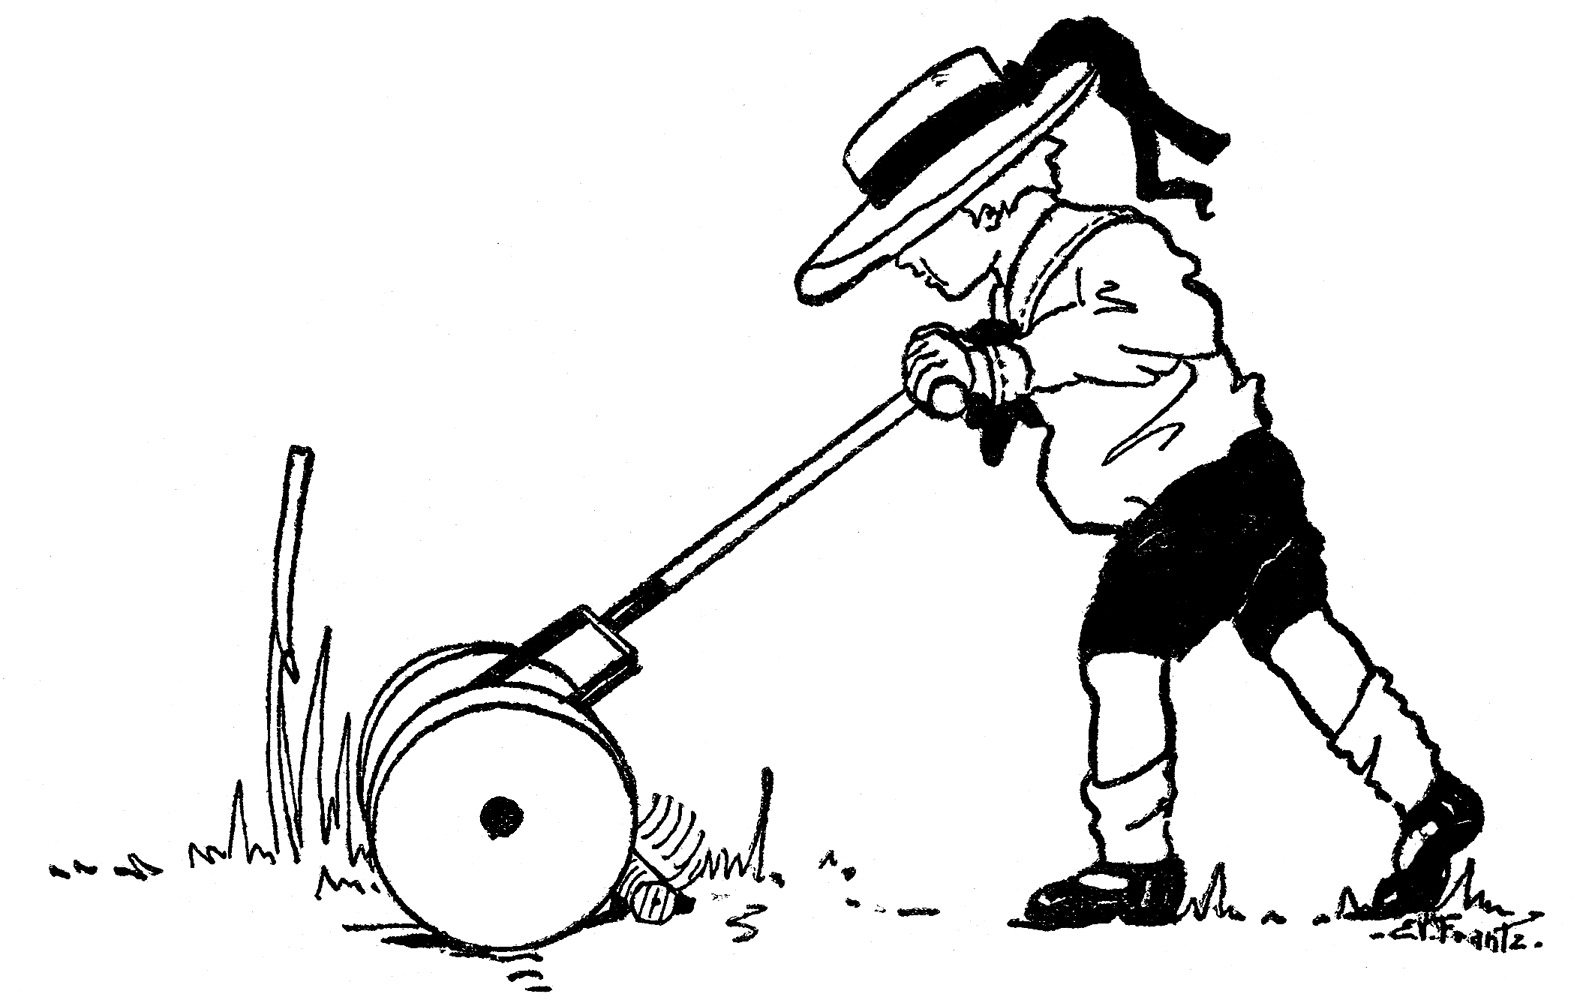 Free Lawn Mower Image, Download Free Clip Art, Free Clip